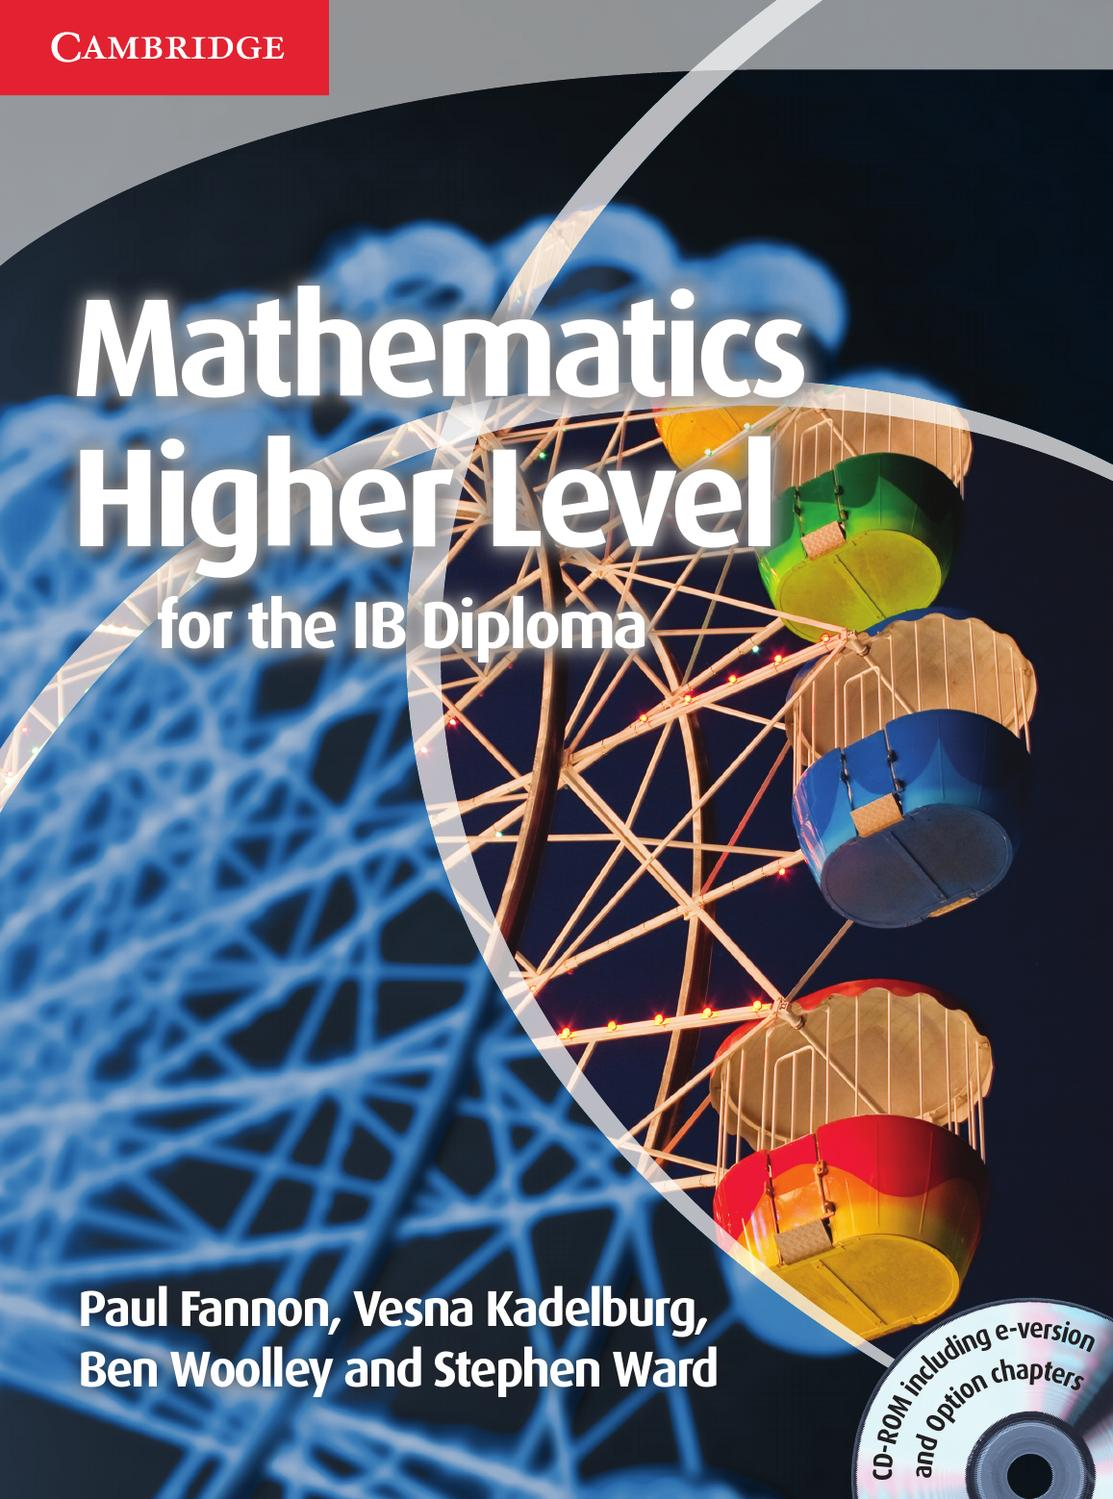 Mathematics Higher Level for the IB Diploma by Cambridge University